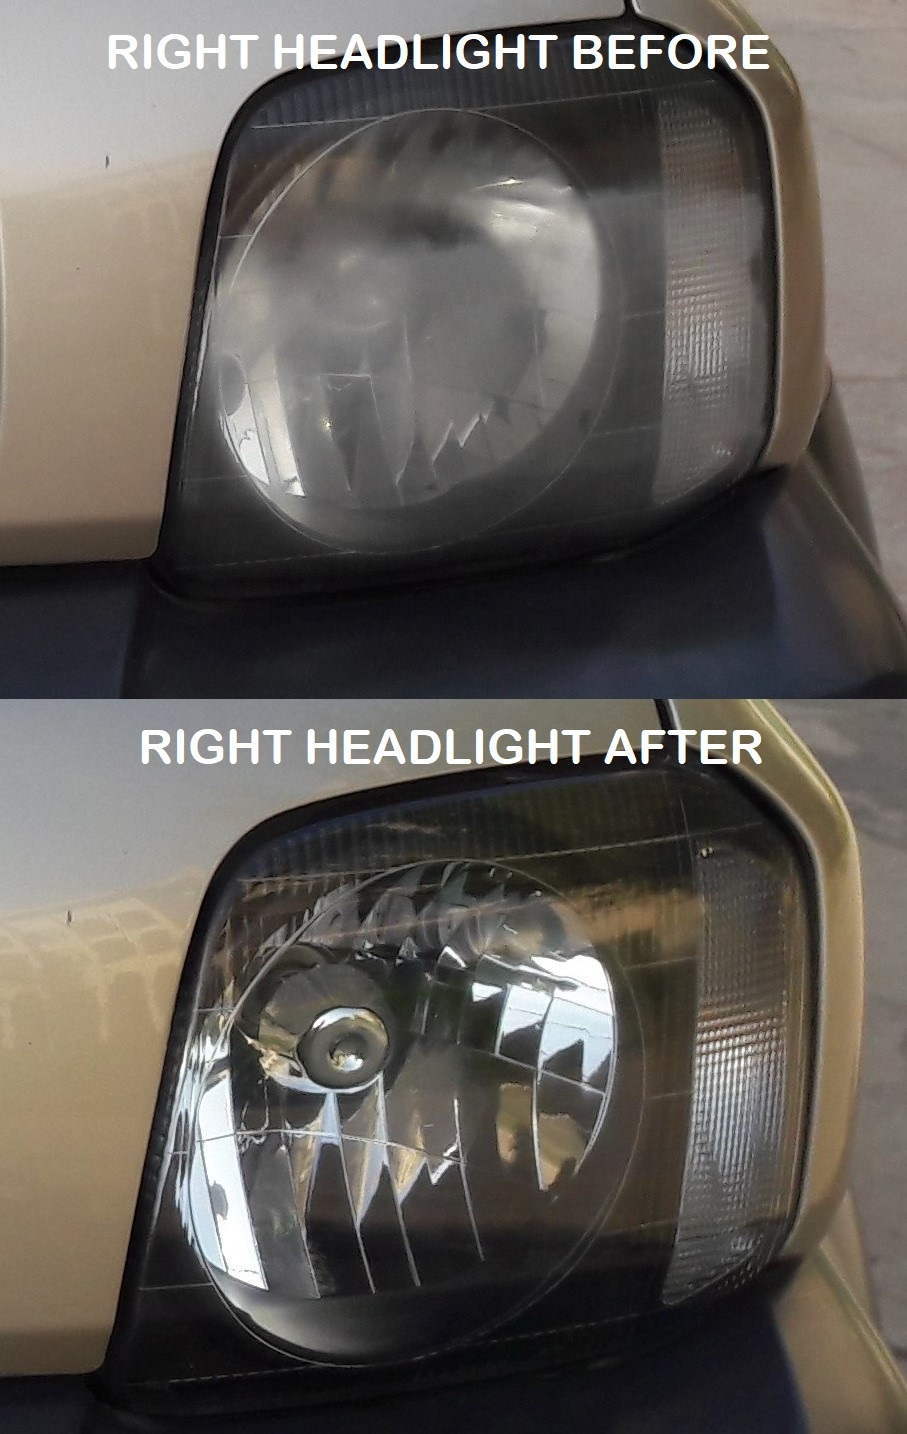 2000 Honda Civic Headlight Bulb : honda, civic, headlight, Honda, Civic, Front, Headlights, Suggestion, Required, PakWheels, Forums